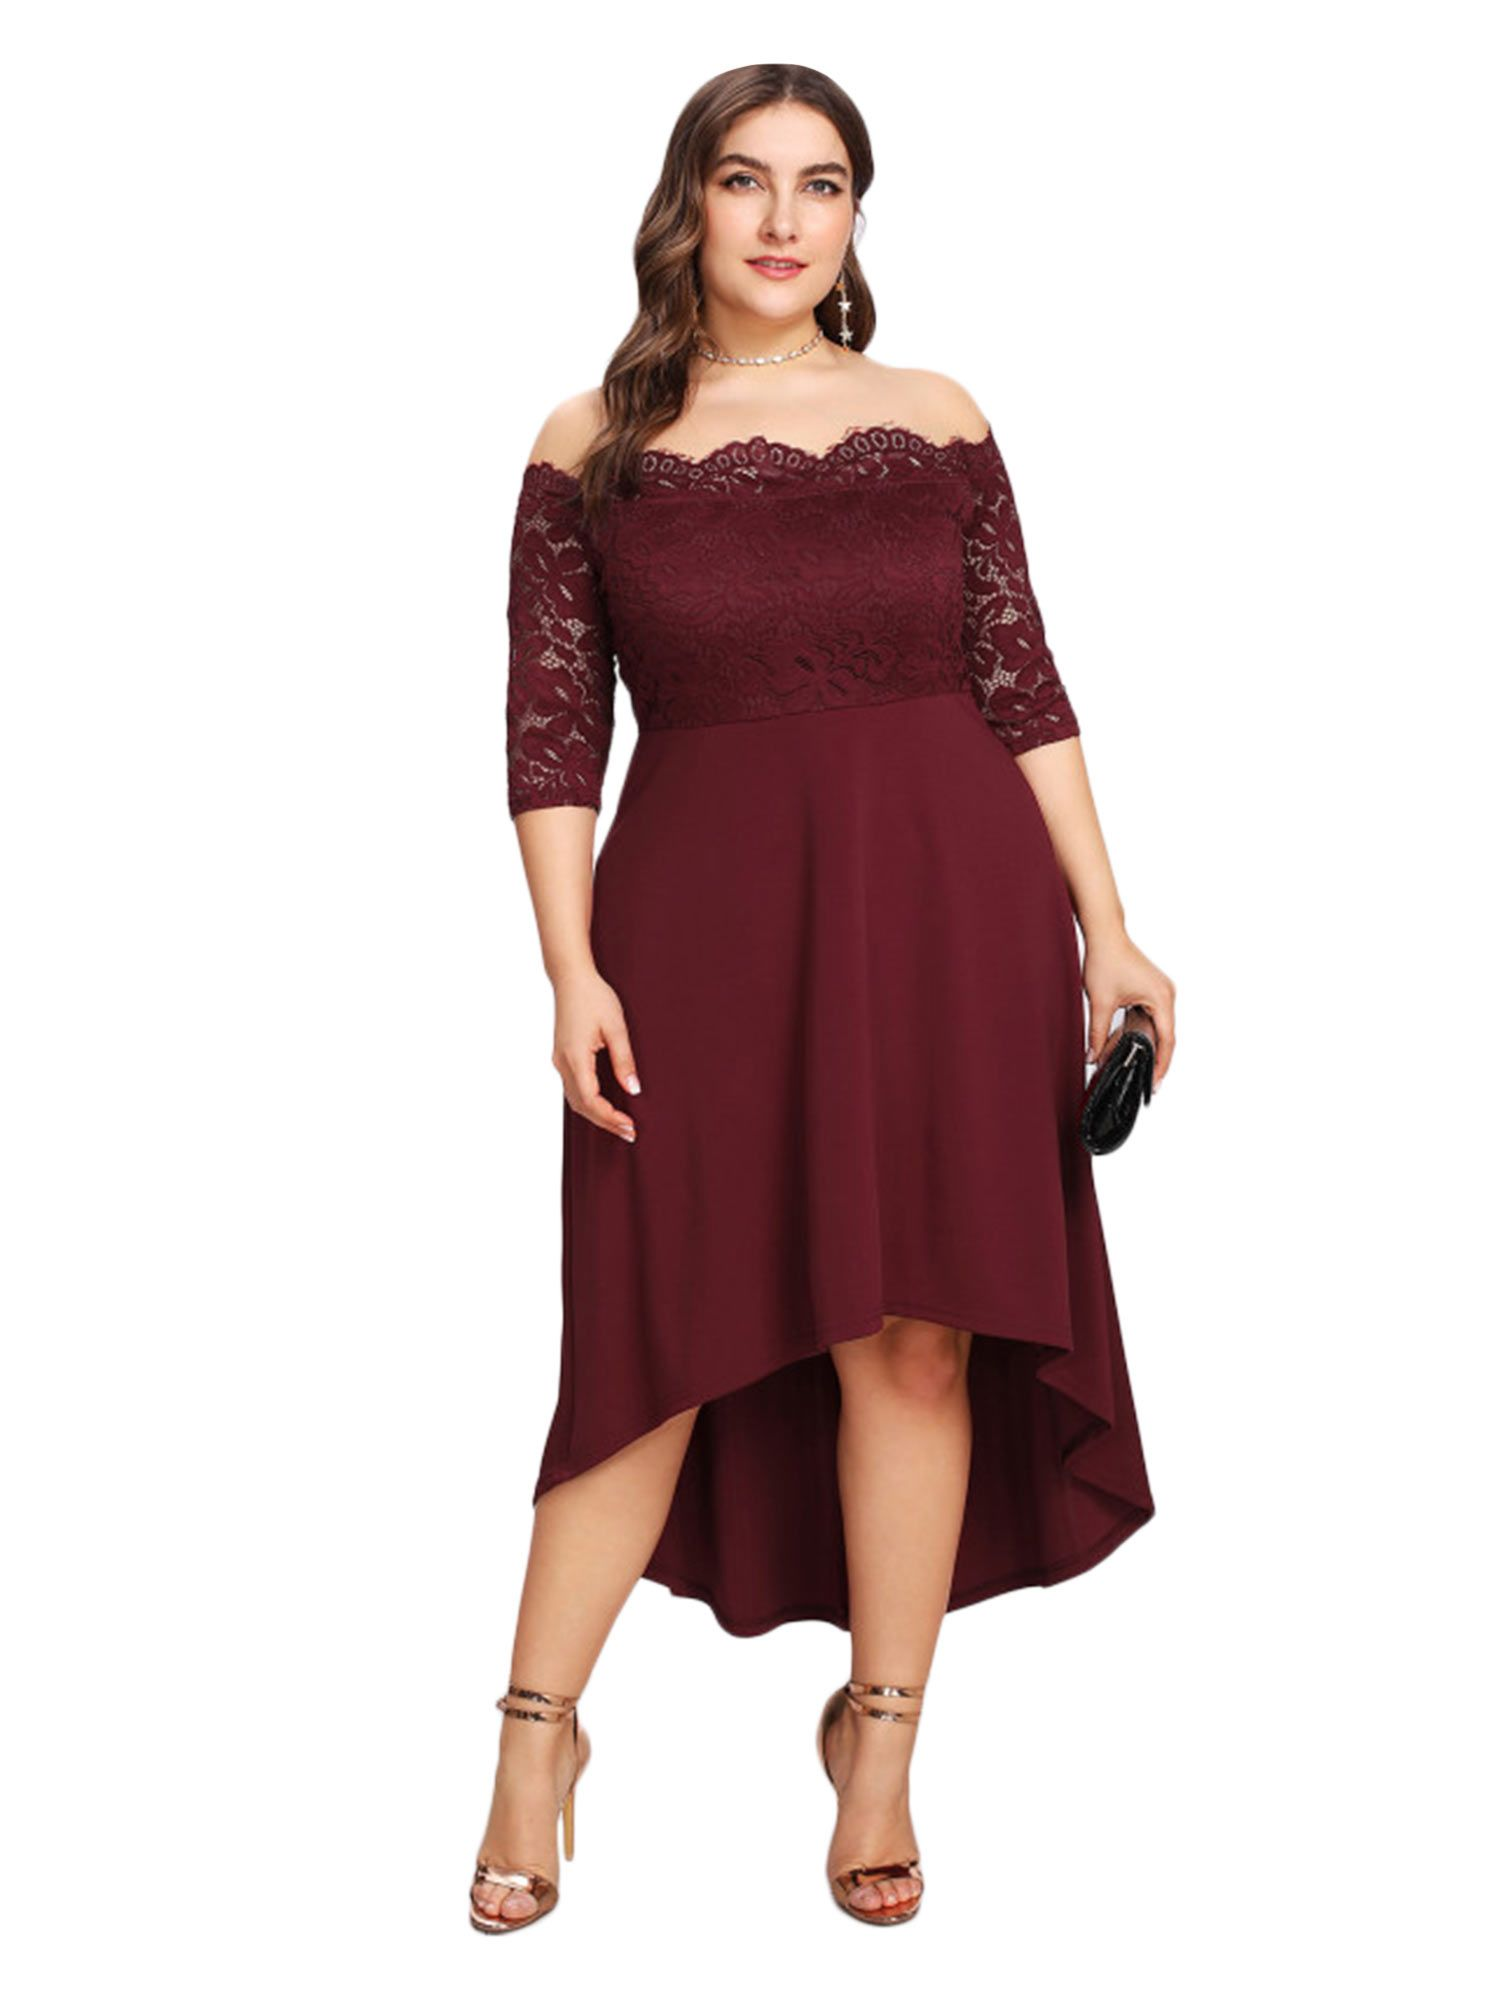 Womenus plus size floral lace offtheshoulder cocktail formal swing